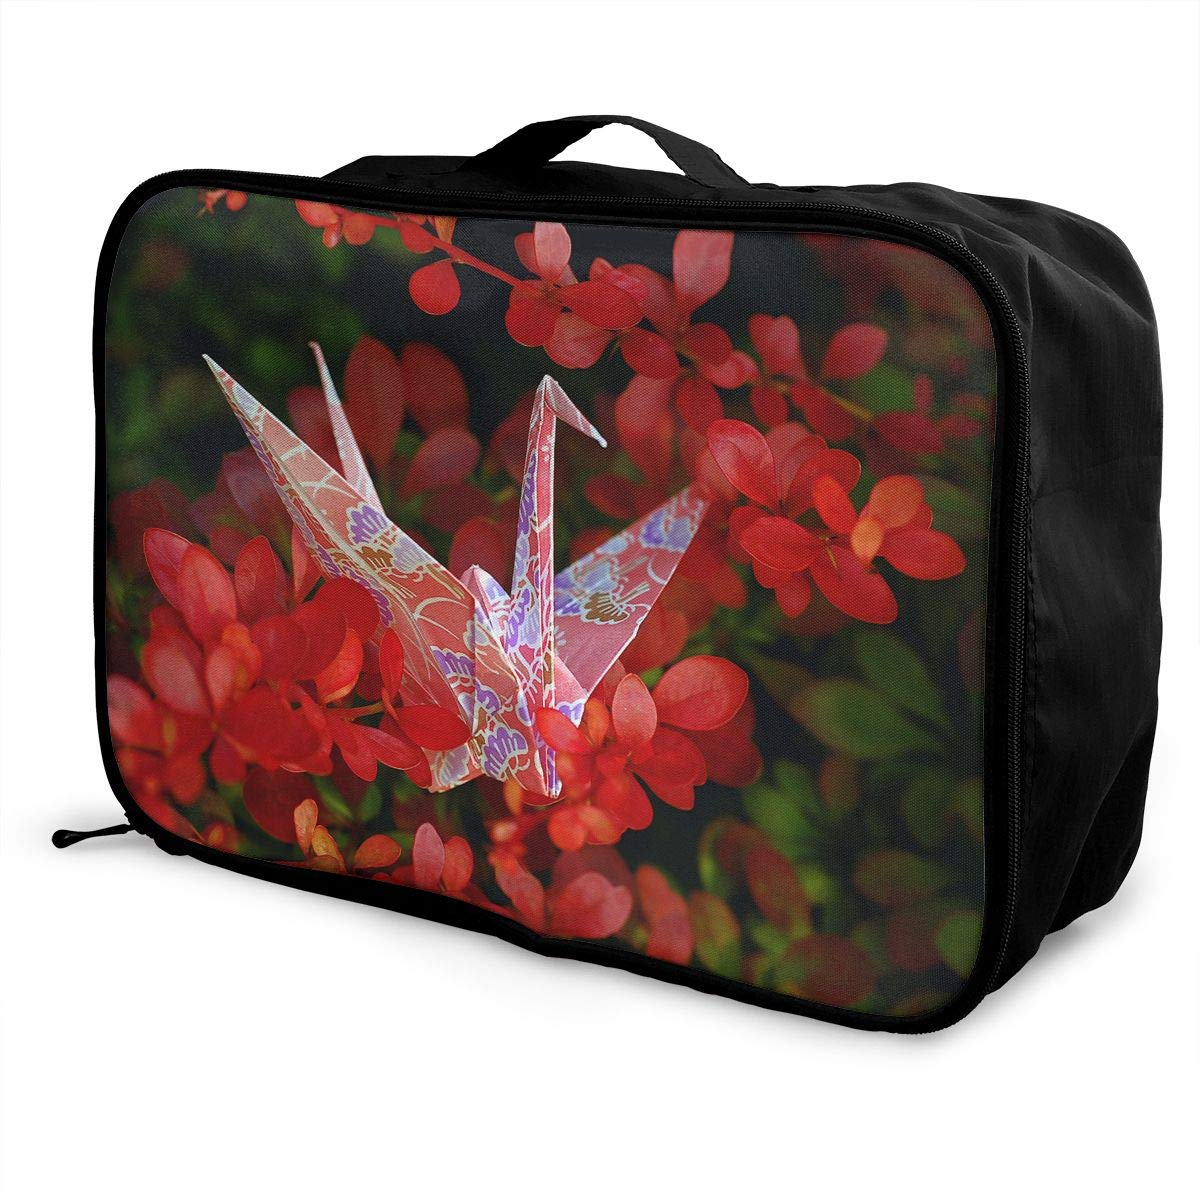 Travel Luggage Duffle Bag Lightweight Portable Handbag Origami Cranes Pattern Large Capacity Waterproof Foldable Storage Tote